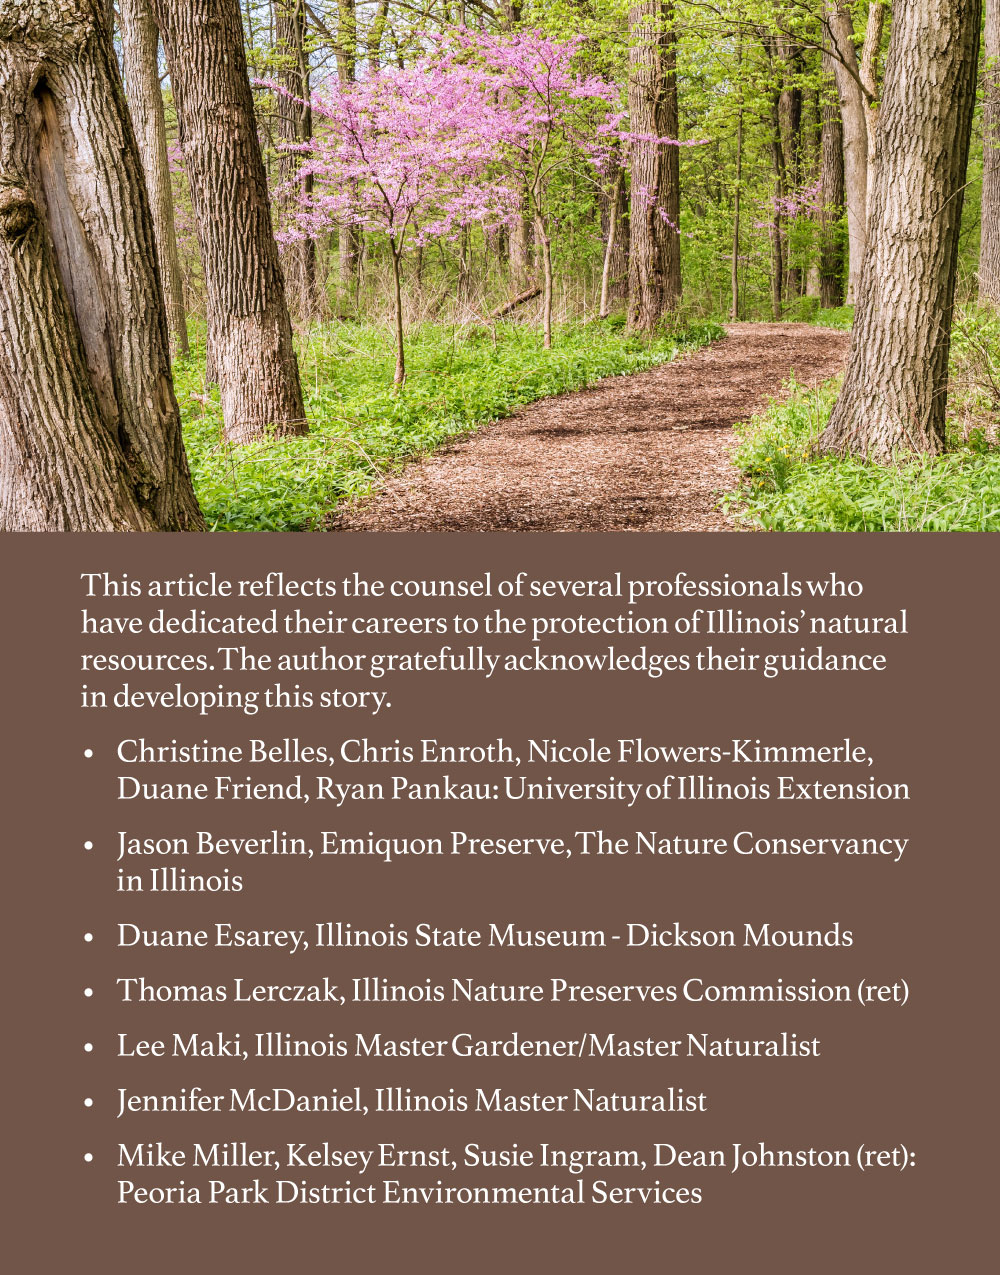 A photo of a spring woodland is at the top of a graphic. Below the photo is text regarding the guidance provided to the author by listed resources for the article.